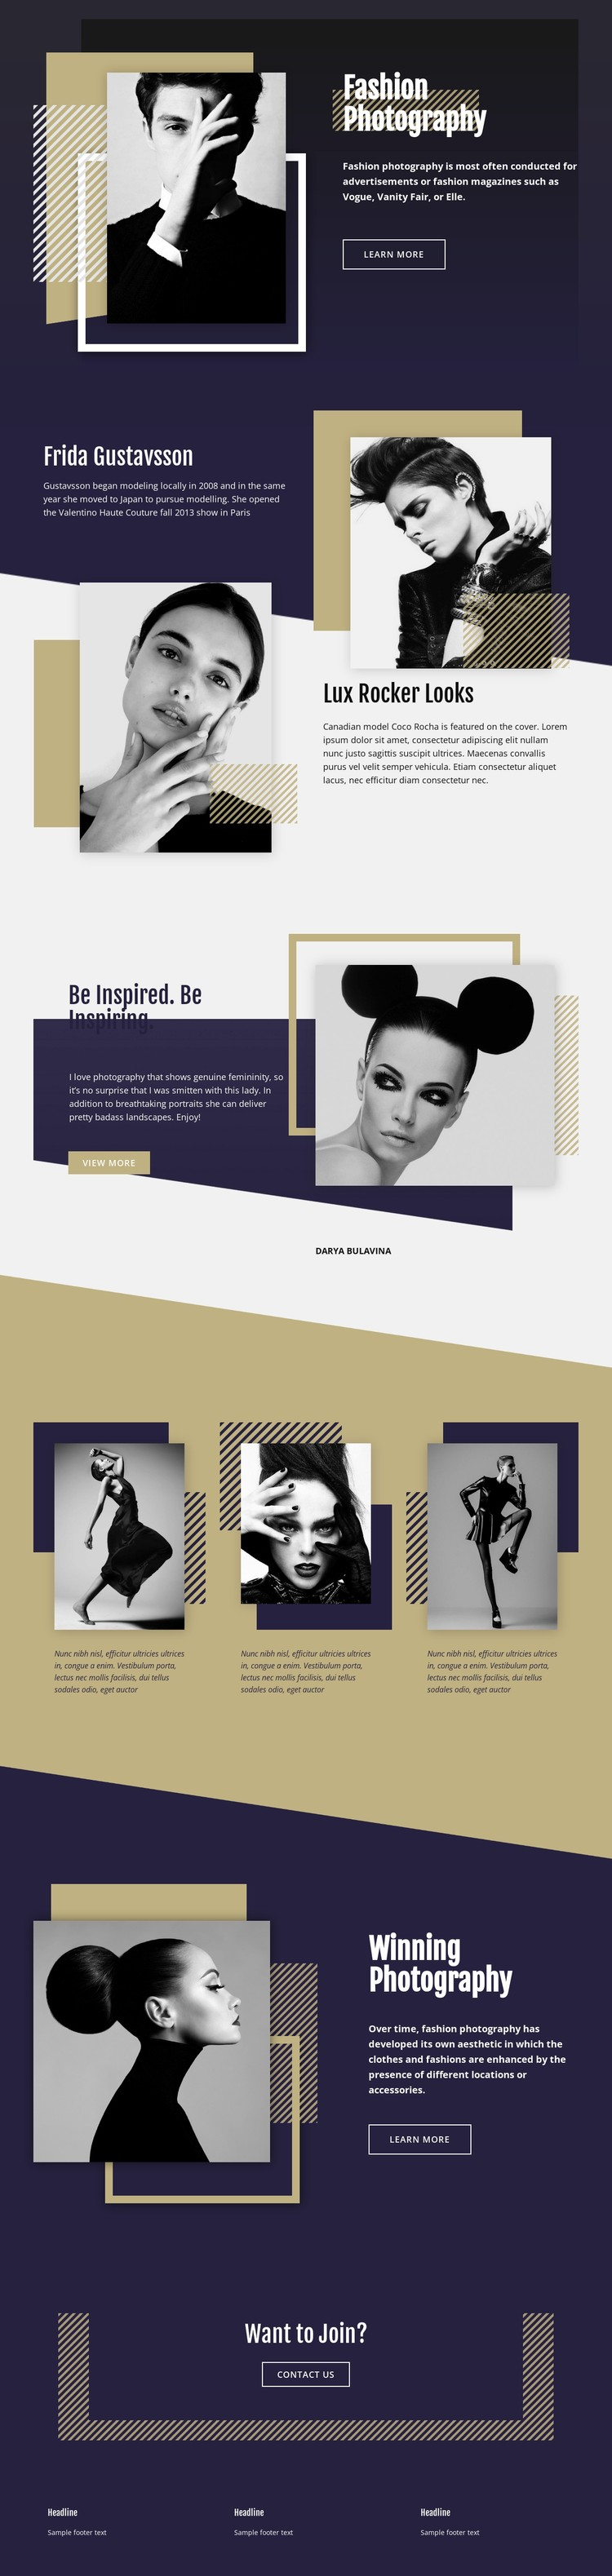 Fashion Photography Static Site Generator